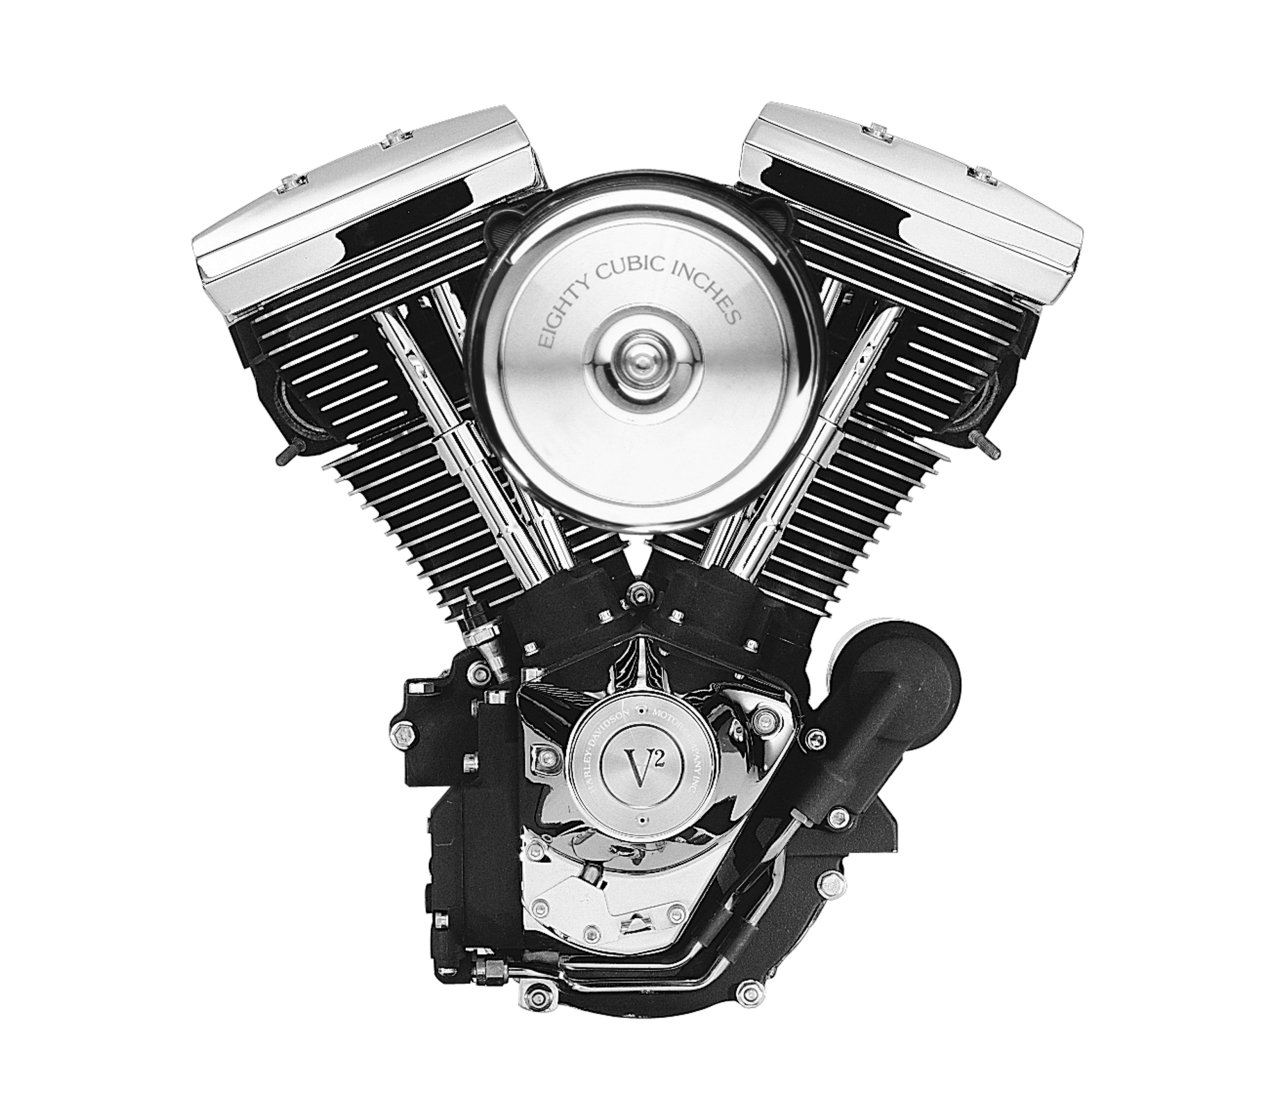 similiar 1989 harley davidson evolution motor diagram keywords harley davidson v twin evolution engine on panhead engine diagram